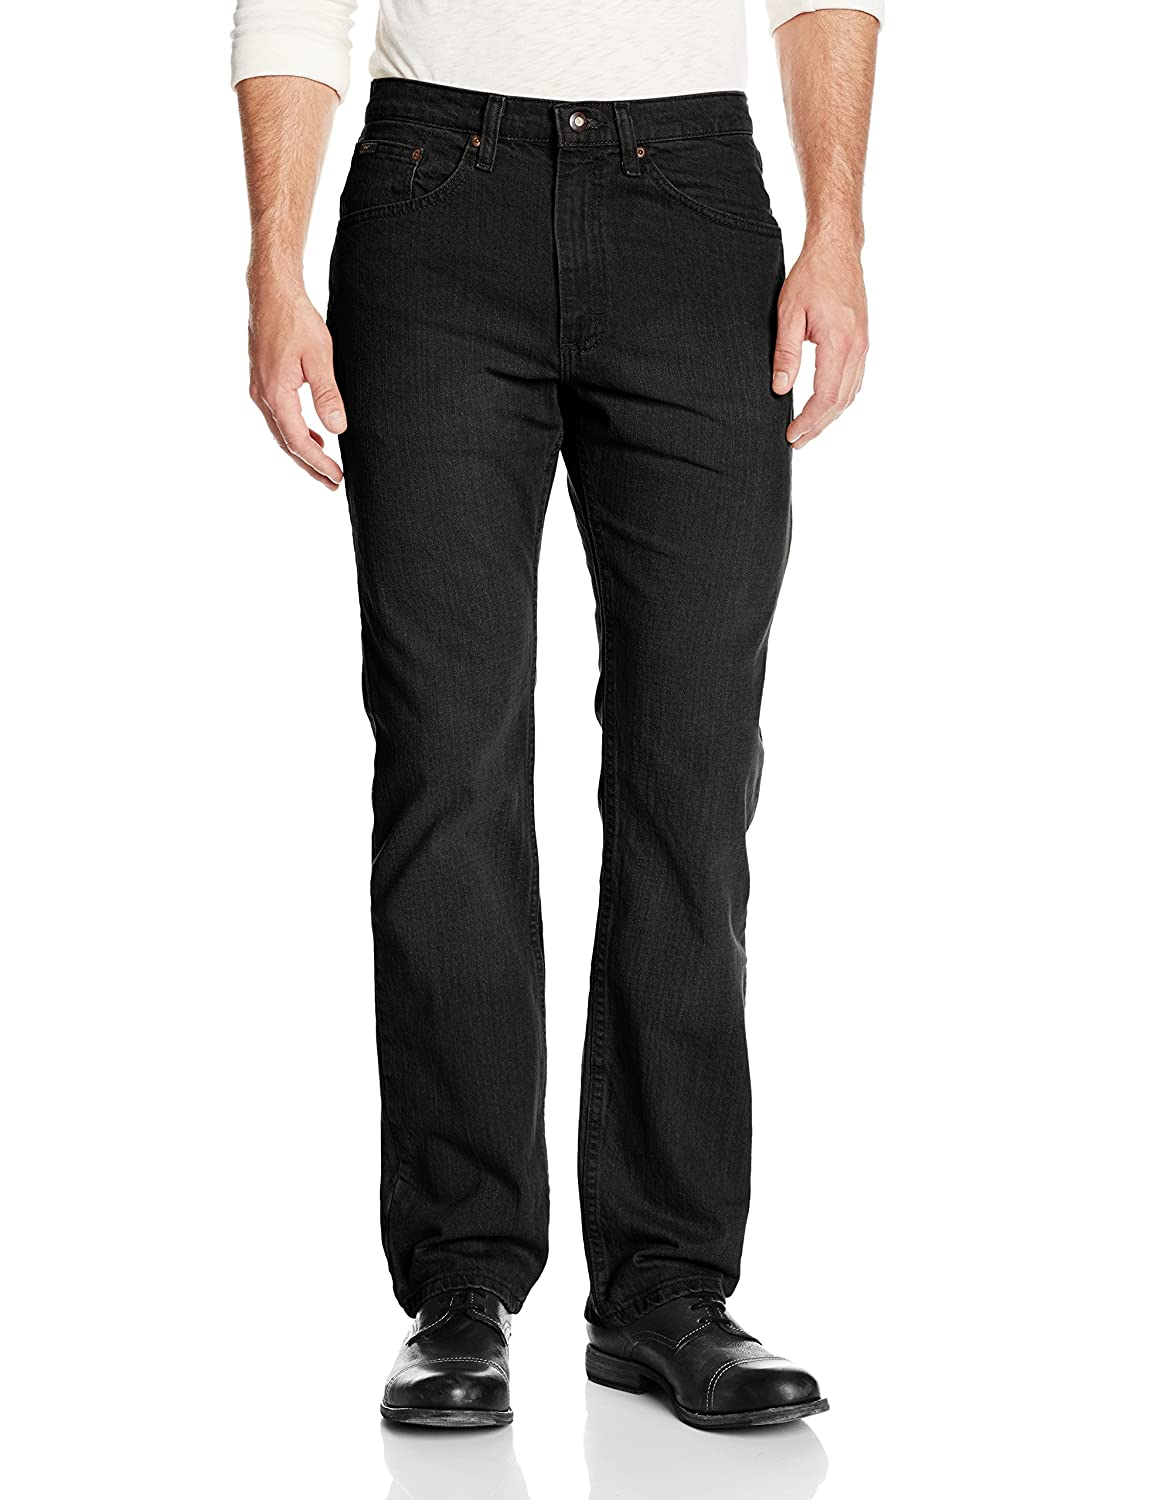 Lee Men's Premium Select Classic Fit Straight Leg Jean 20014